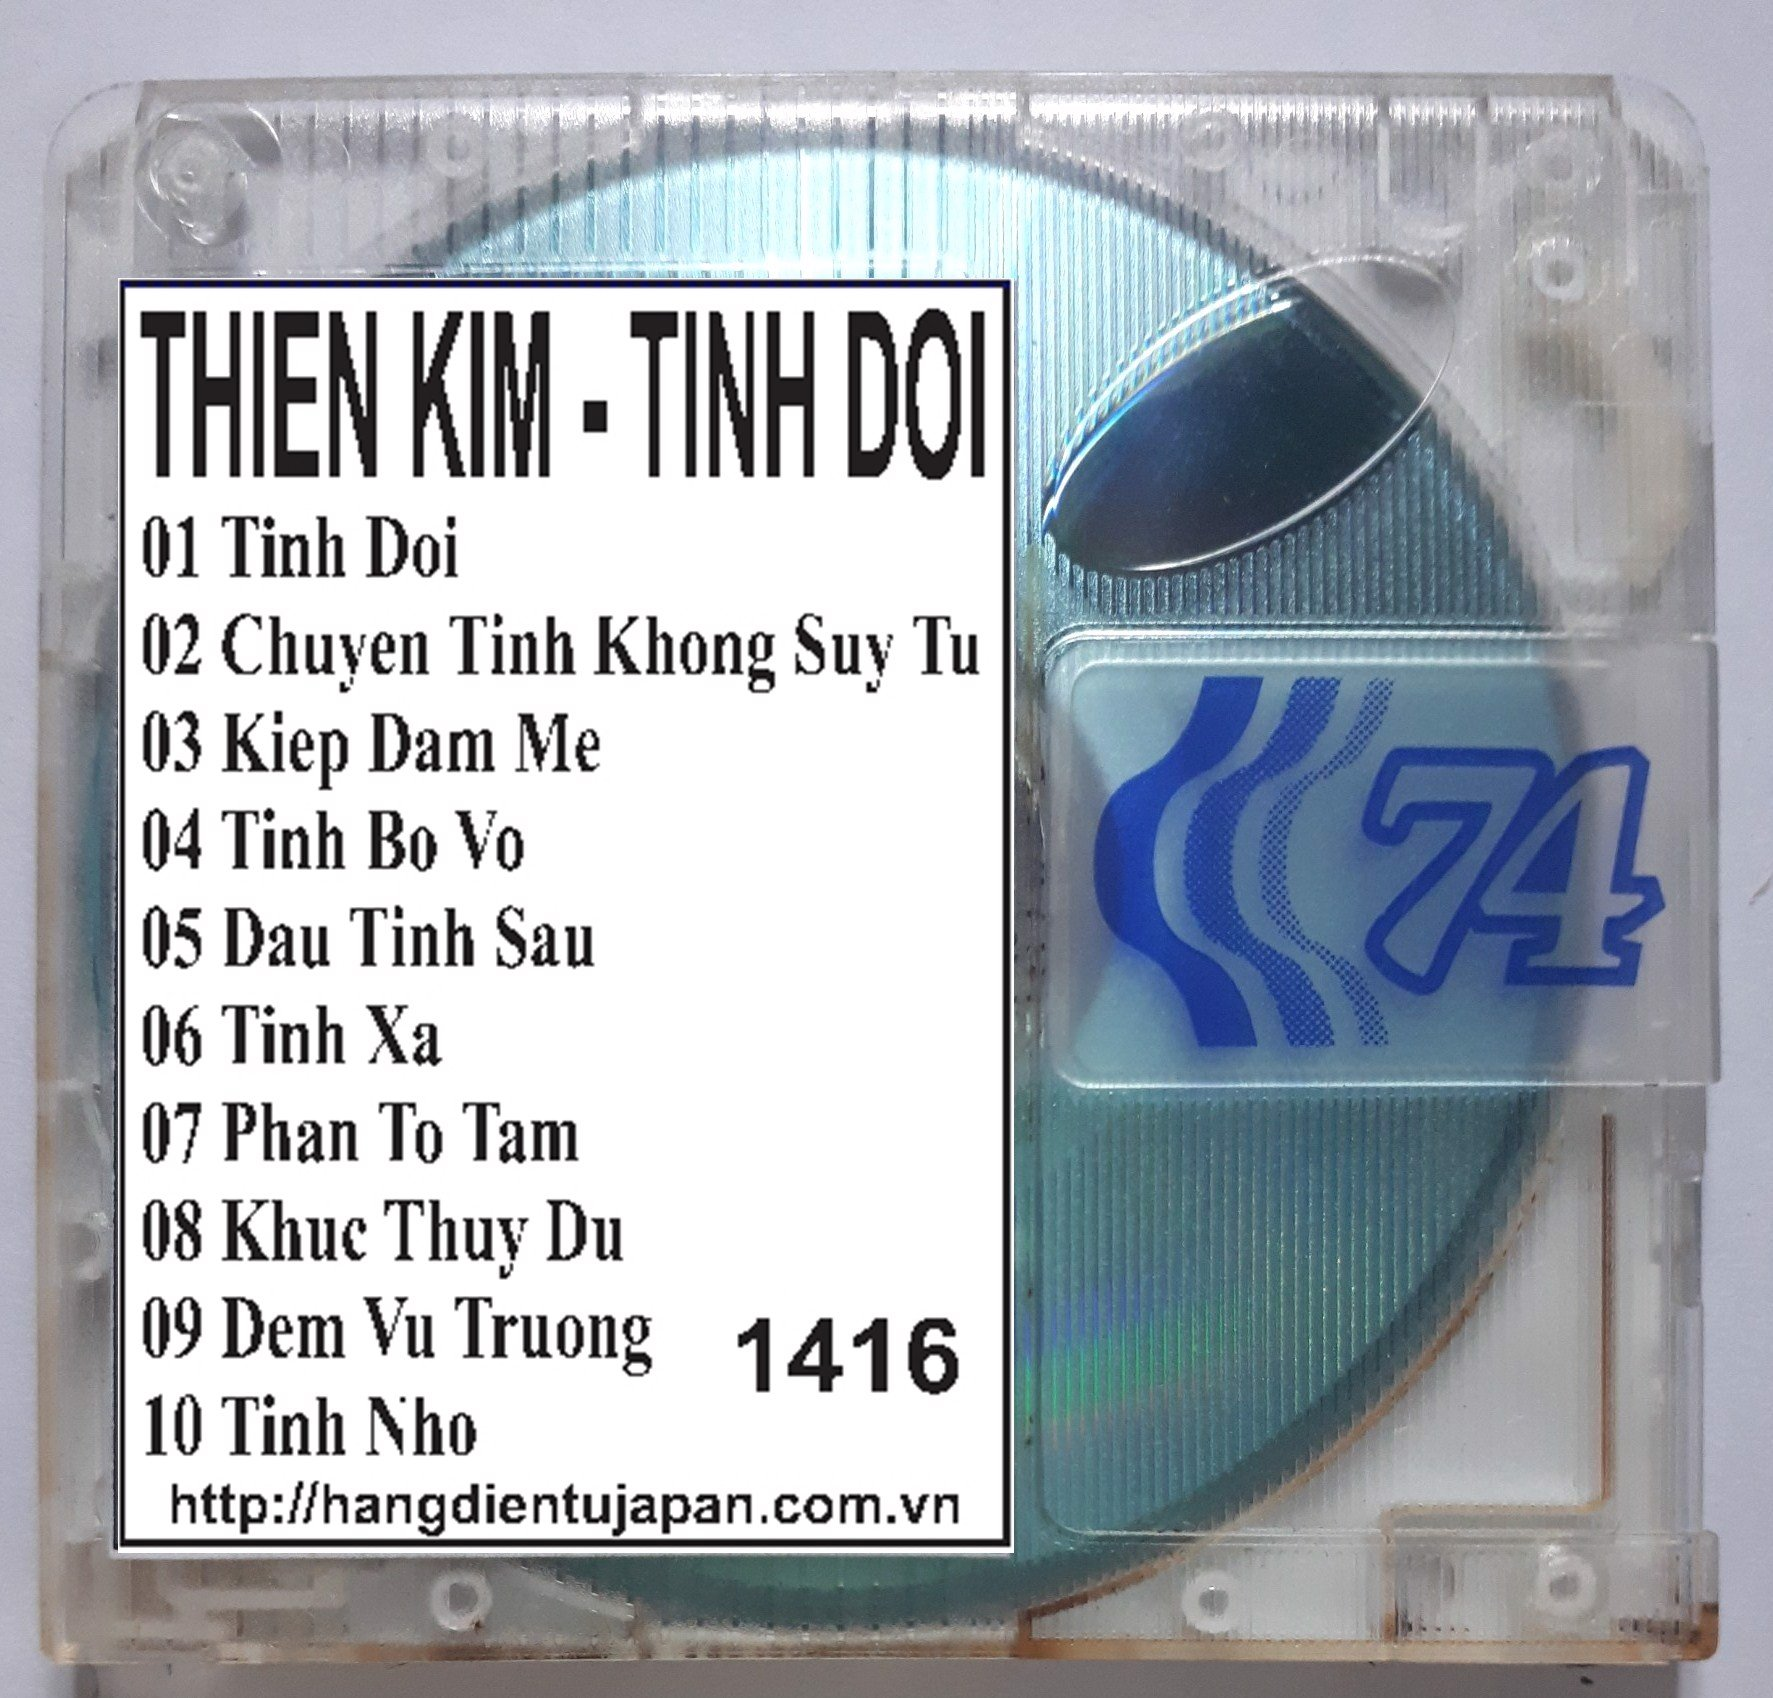 1416. ASIA CS008 - THIEN KIM - TINH DOI